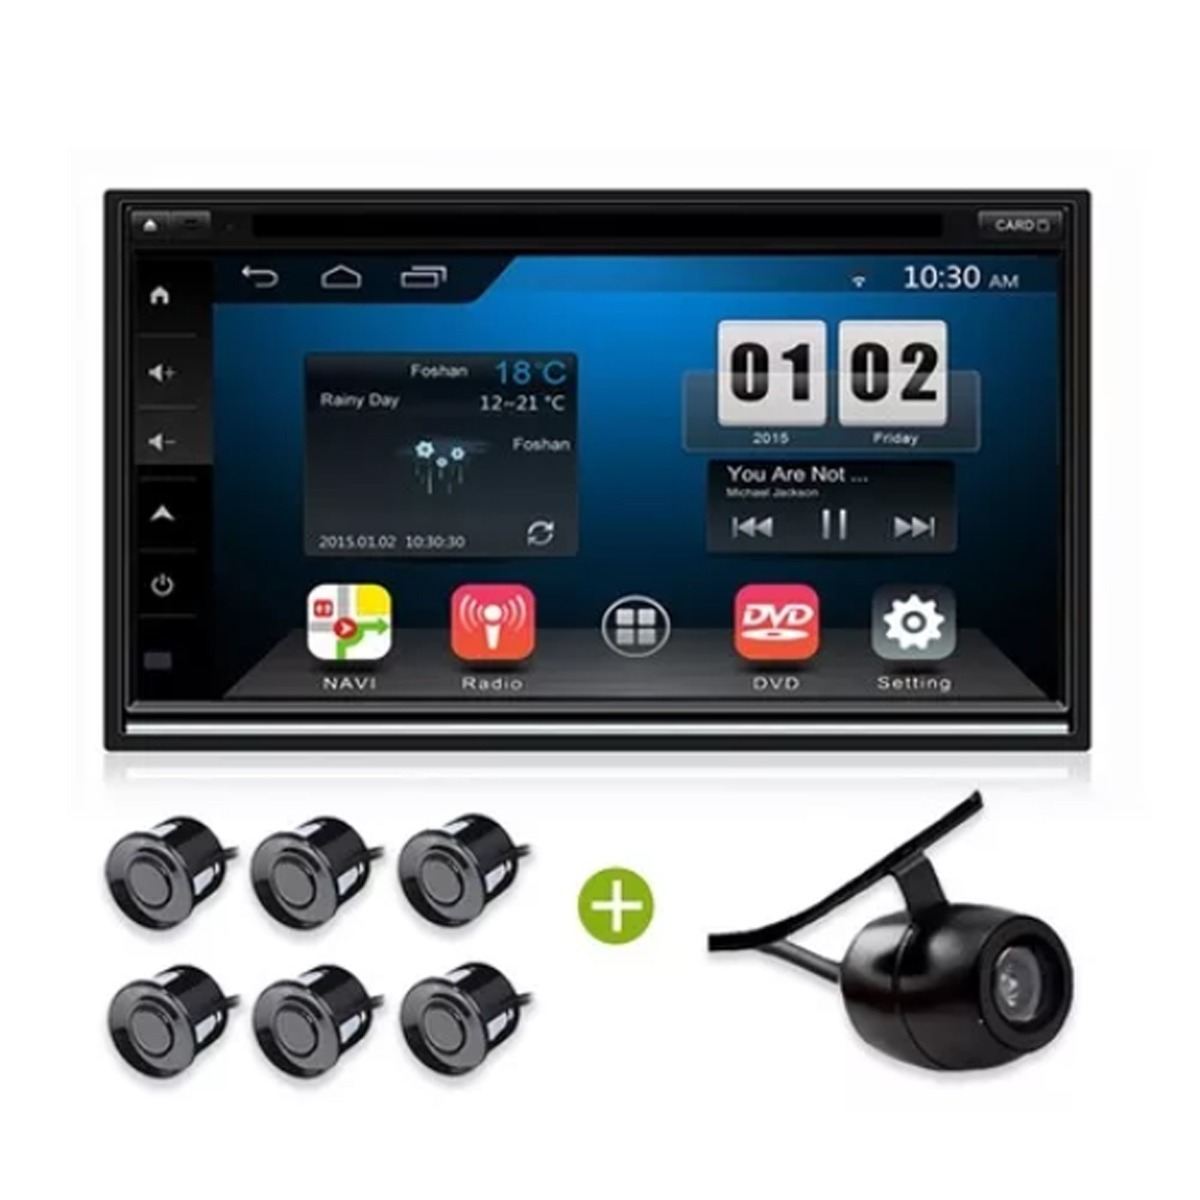 Estereo Android Caska Vw Voyage Gol Trend Saveiro Gps Tv Hd ... d6312ddfffe